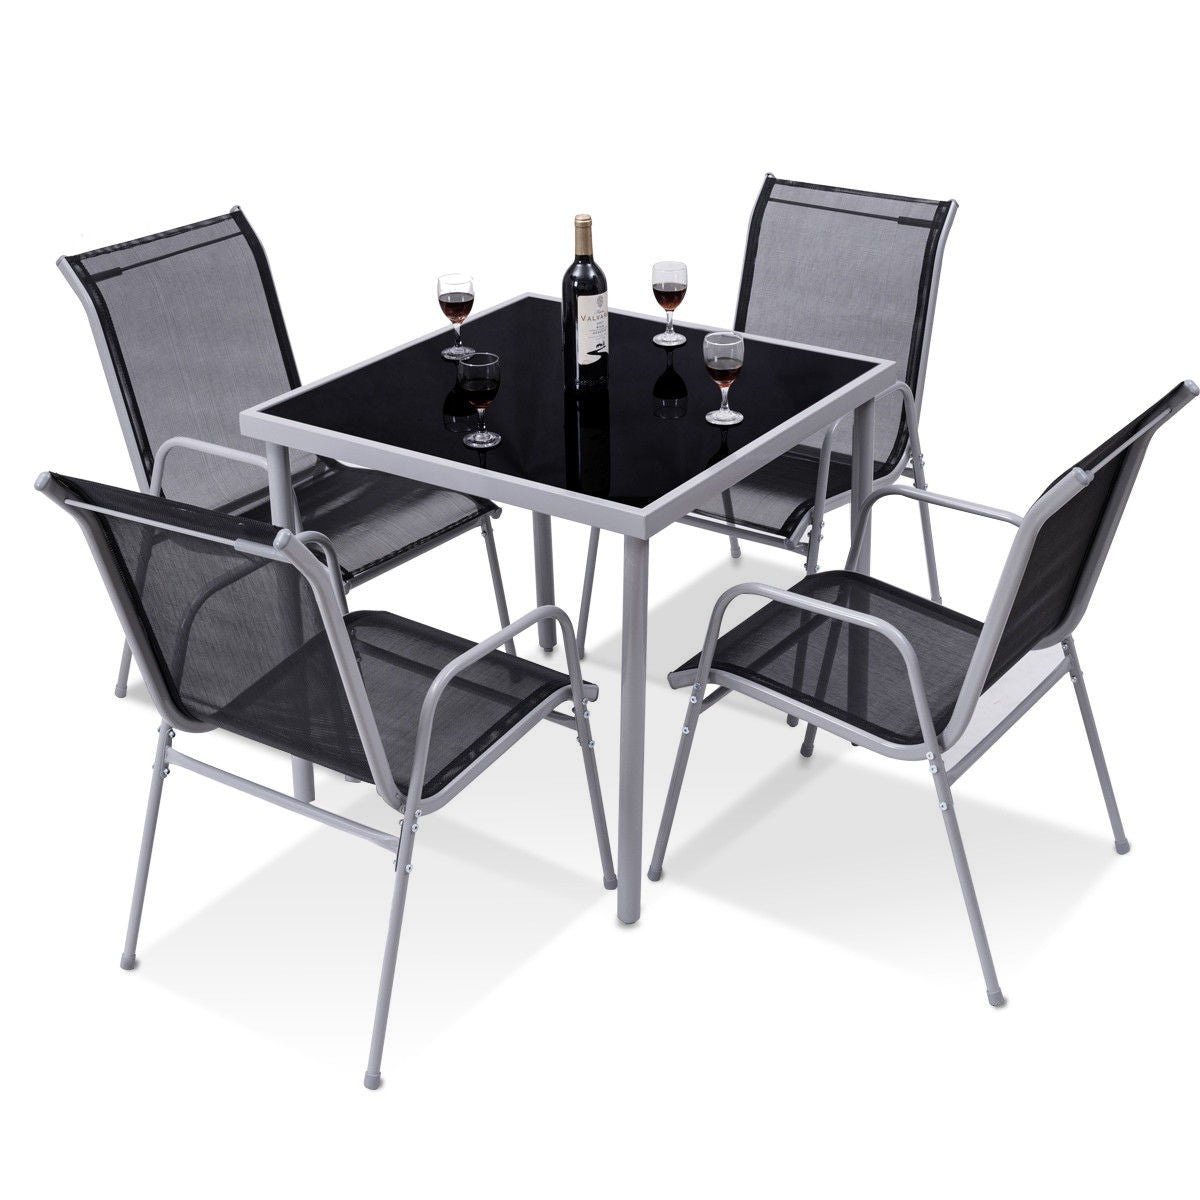 Premium Outdoor Bistro Set Patio Dining Table and Chair - Morealis